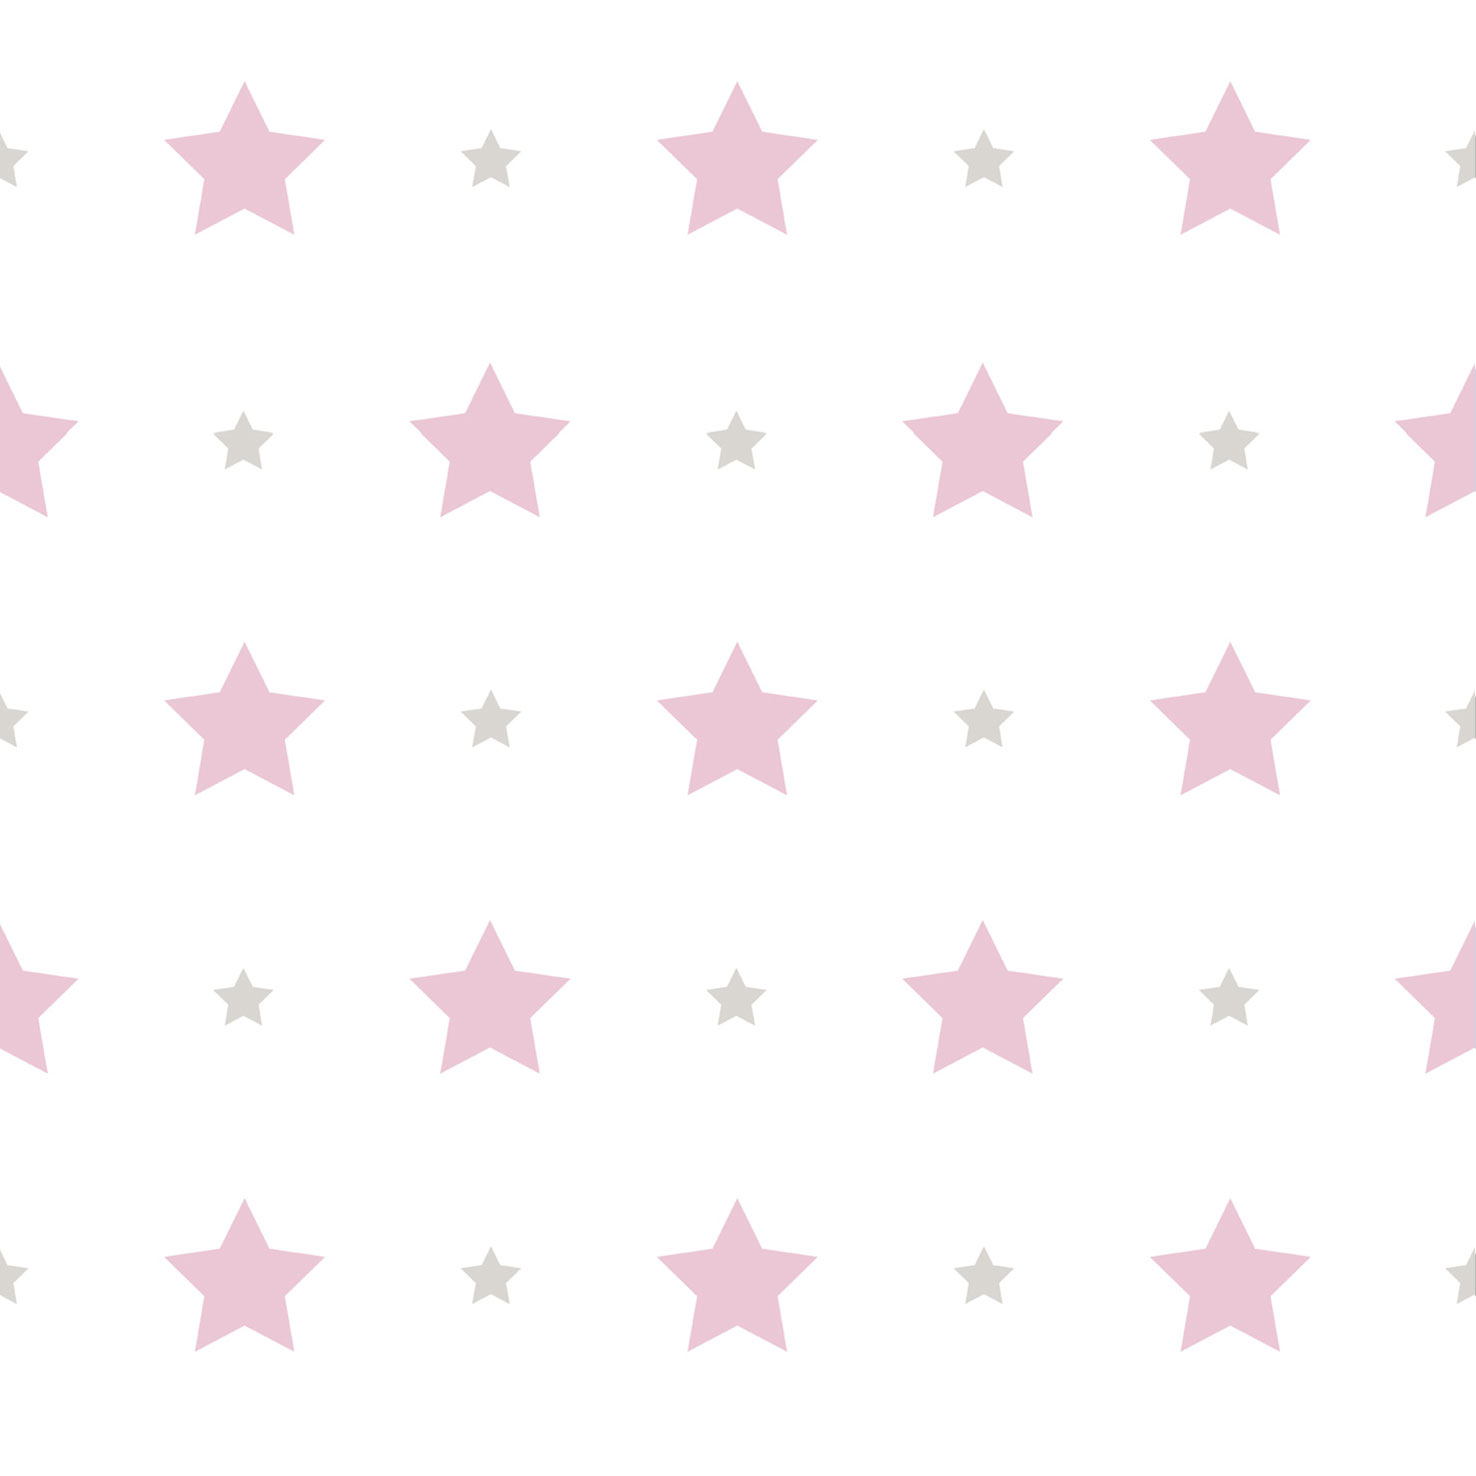 pink star wallpaper  Kids Wallpaper stars star Rasch Textil white pink 330136